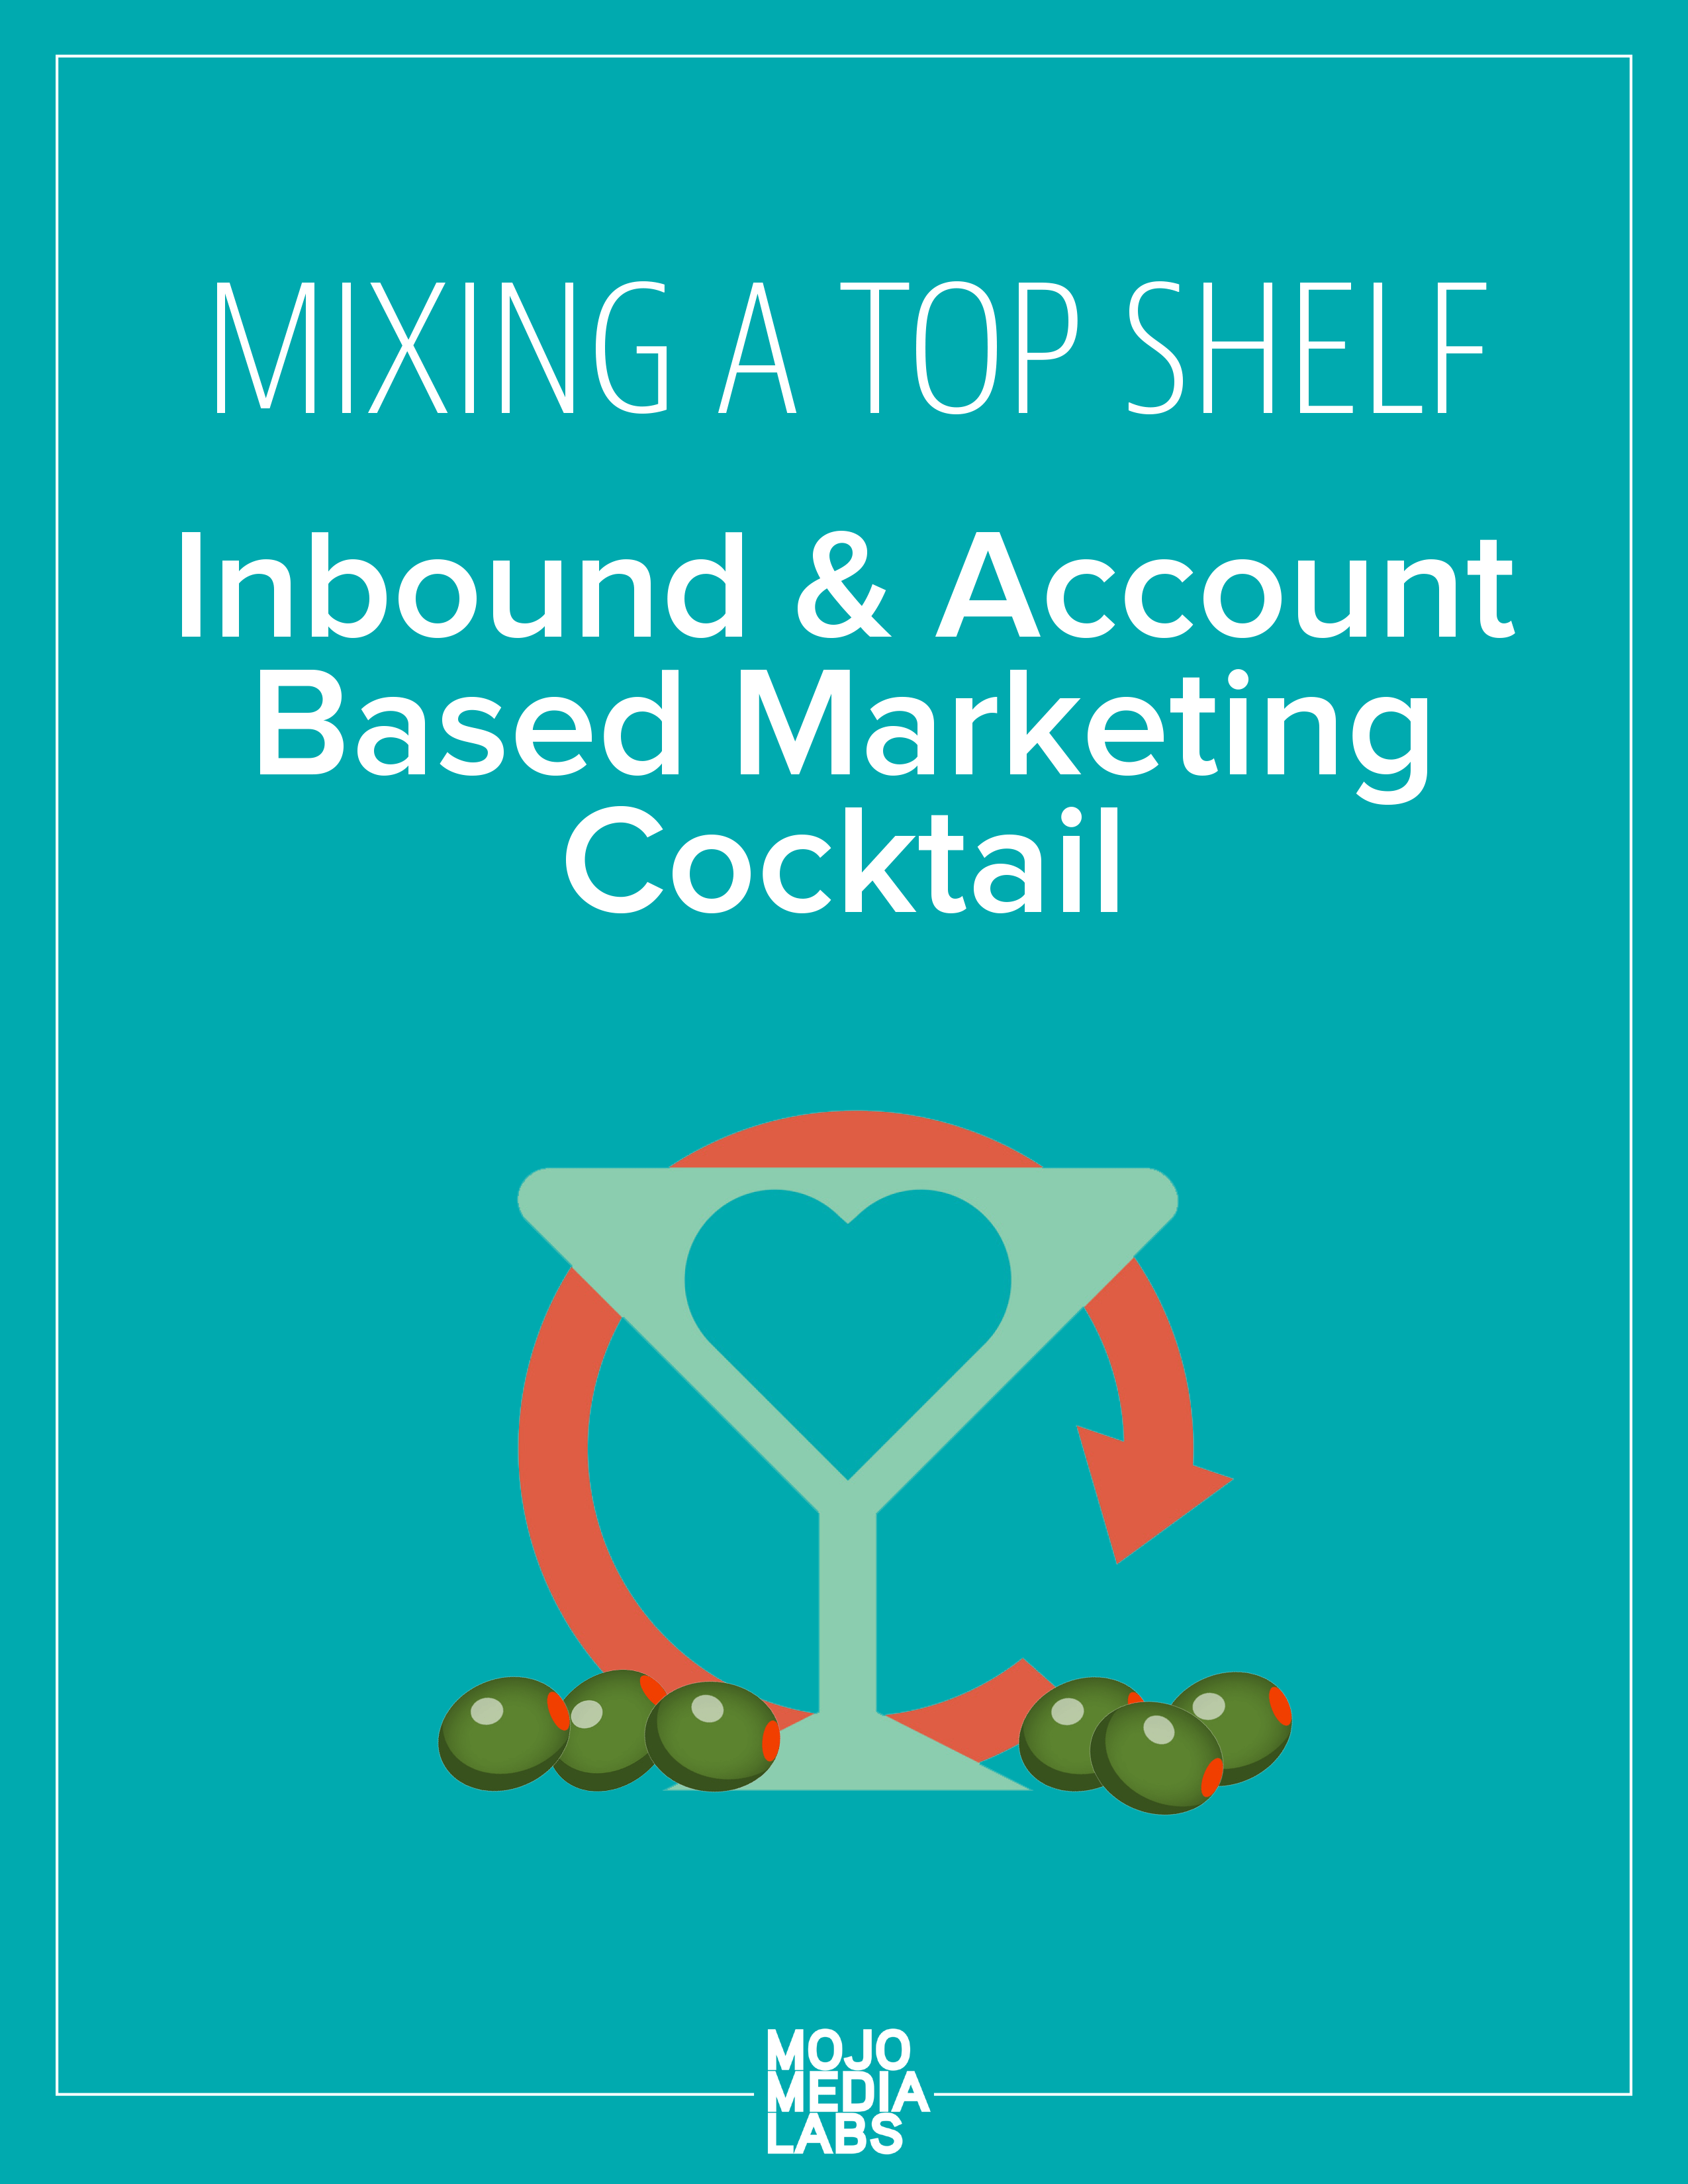 Mojo-TOFU-Inbound and Account Based Marketing_Cover Thubmnail Checklist-1.png